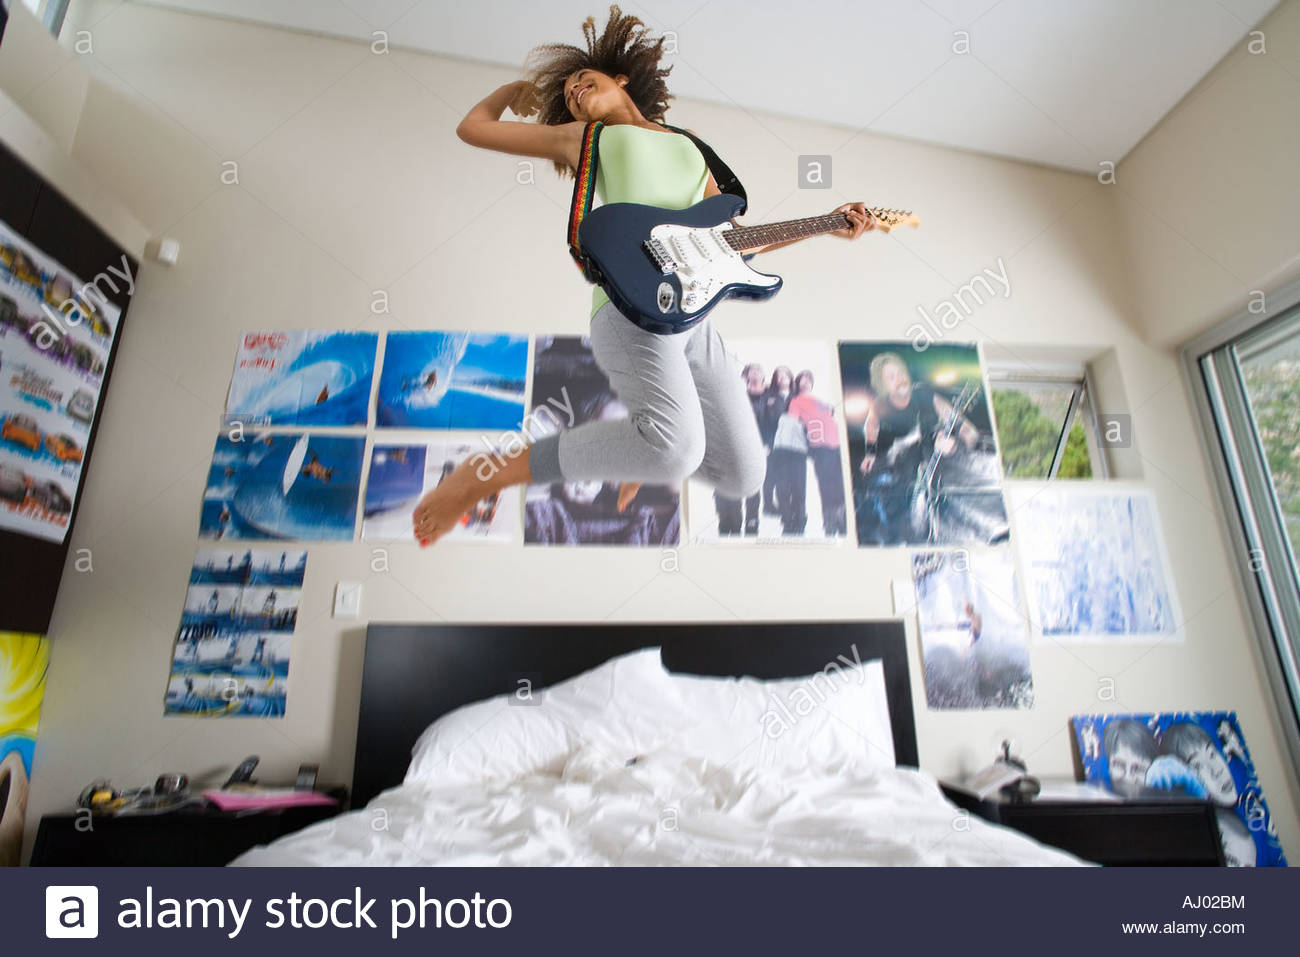 Teenage Girl Playing Electric Guitar Jumping In Air Above Bed Low